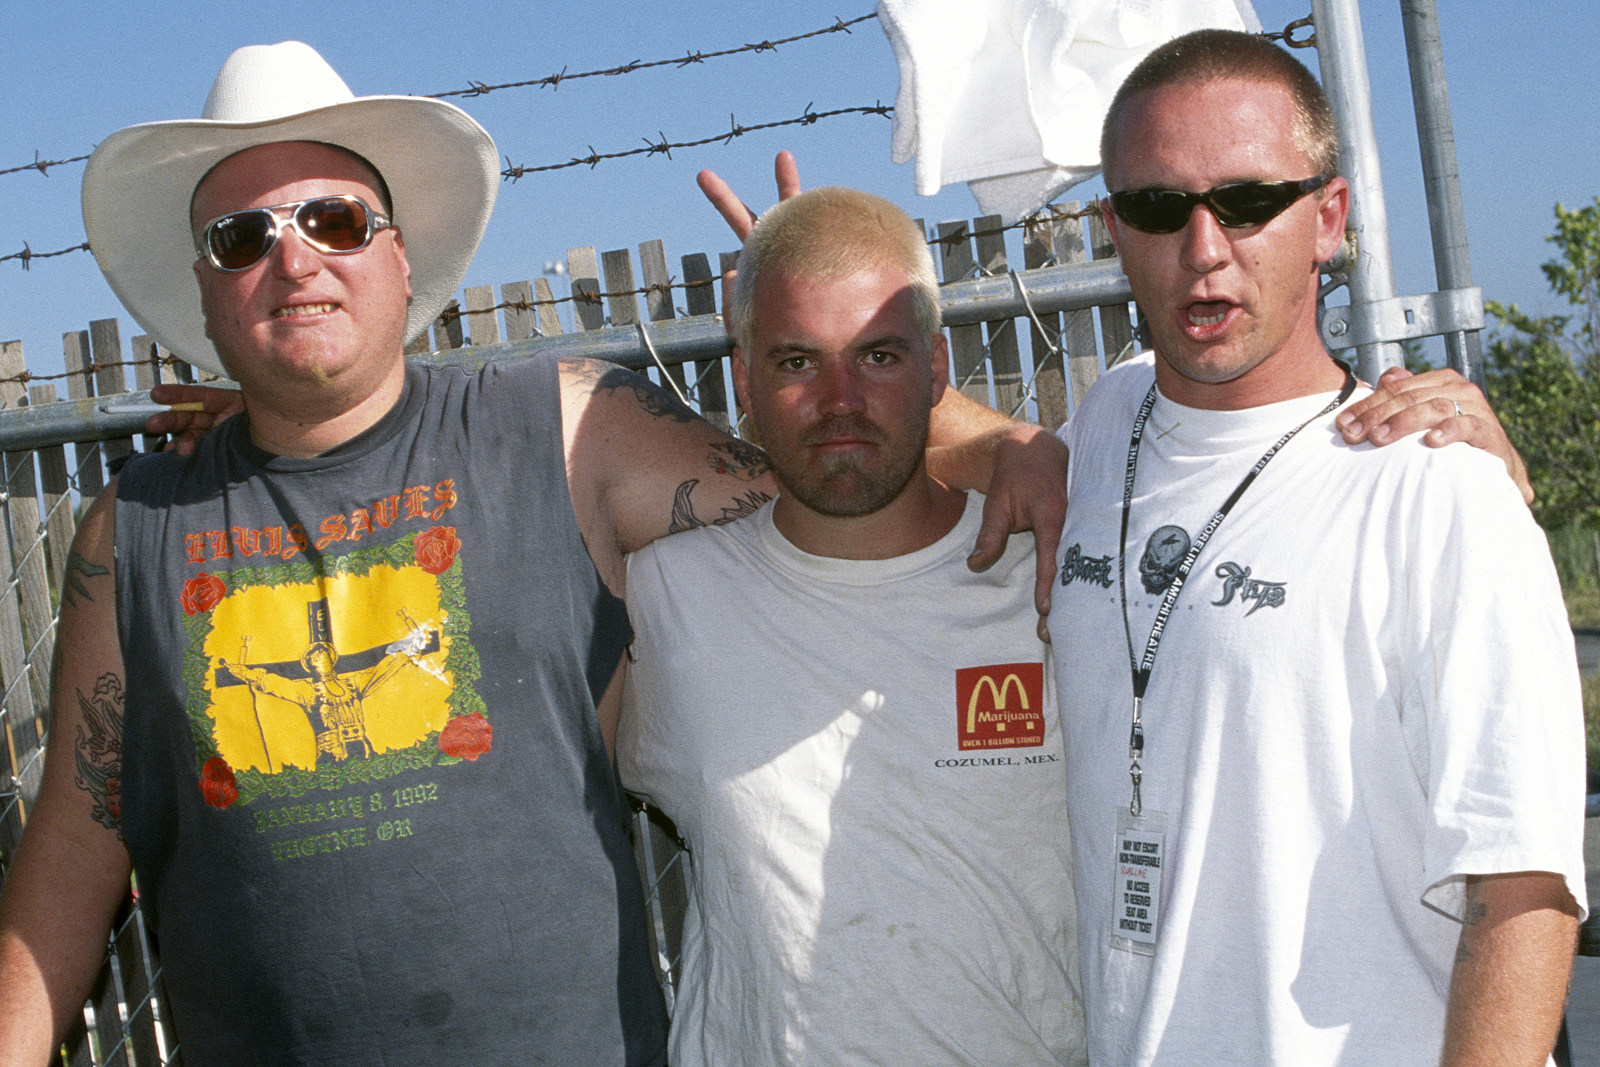 Sublime: Label Demanded New Singer Two Weeks After Nowell's Death